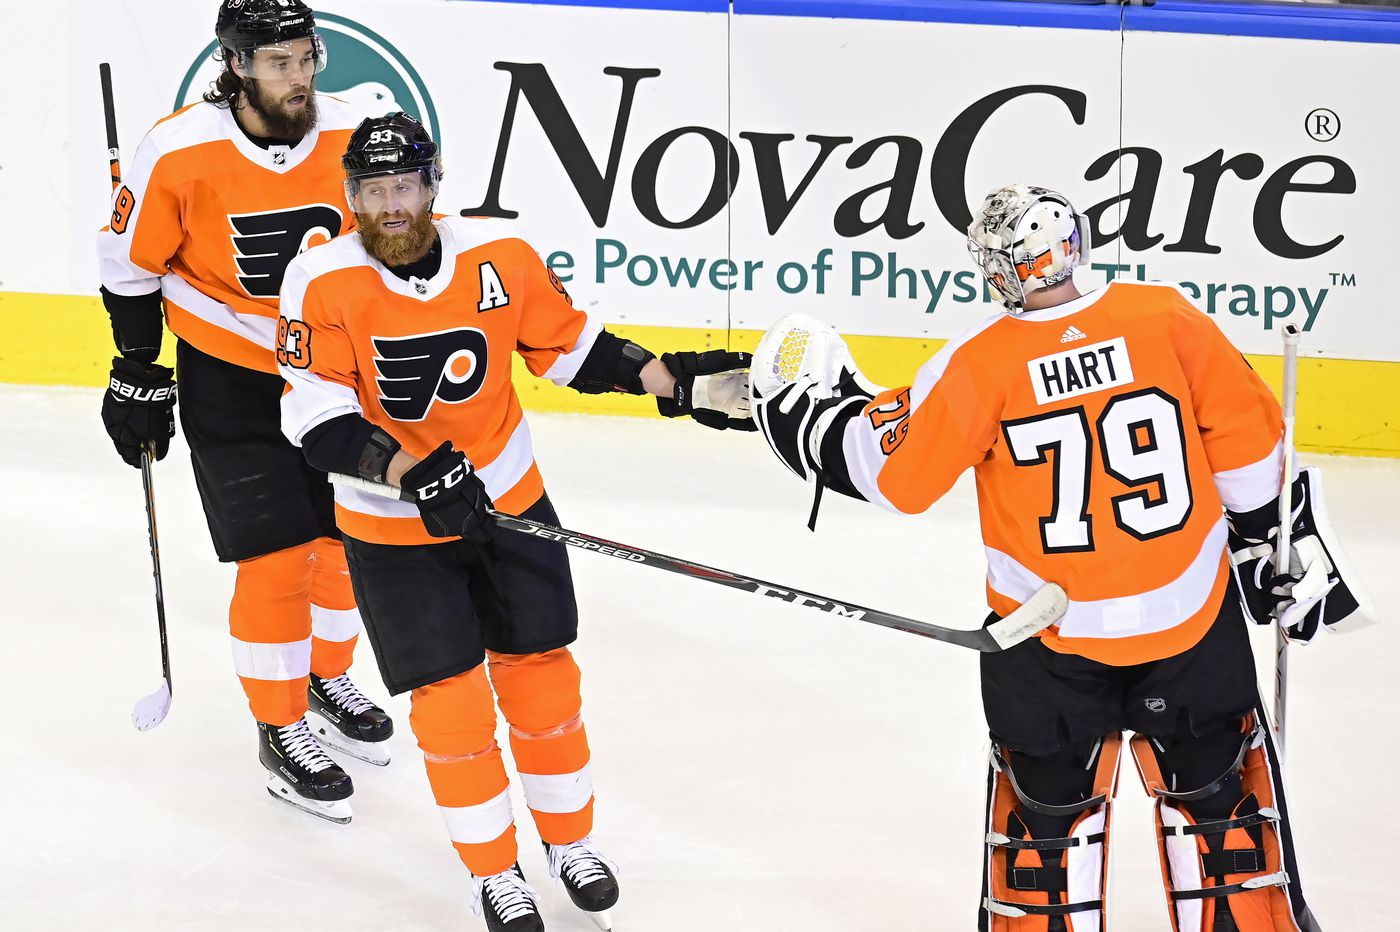 Will Flyers coach Alain Vigneault show faith in 'group that brought you to the dance?'